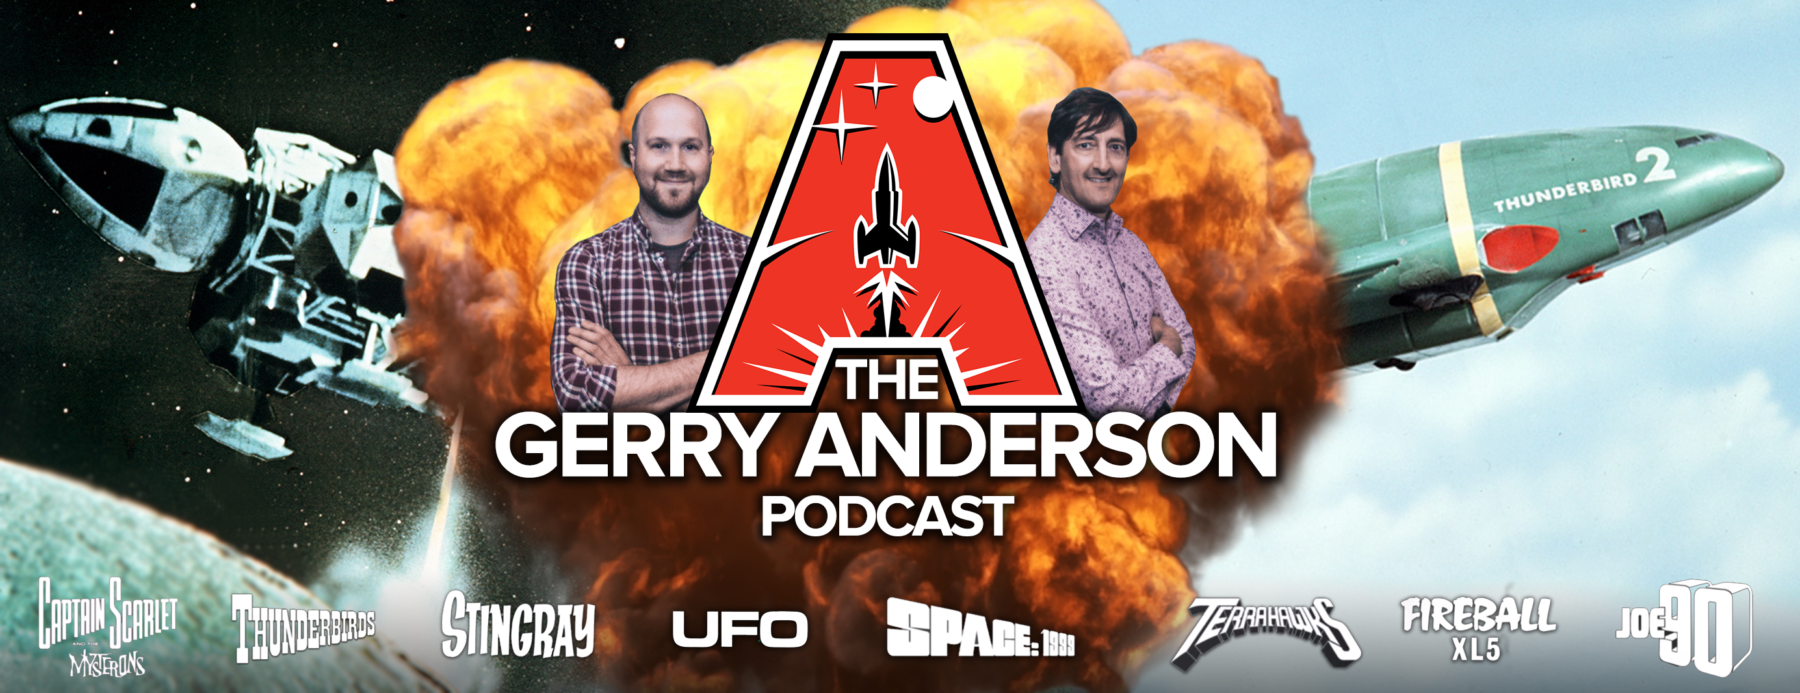 Anderson Entertainment launches the Gerry Anderson Podcast.